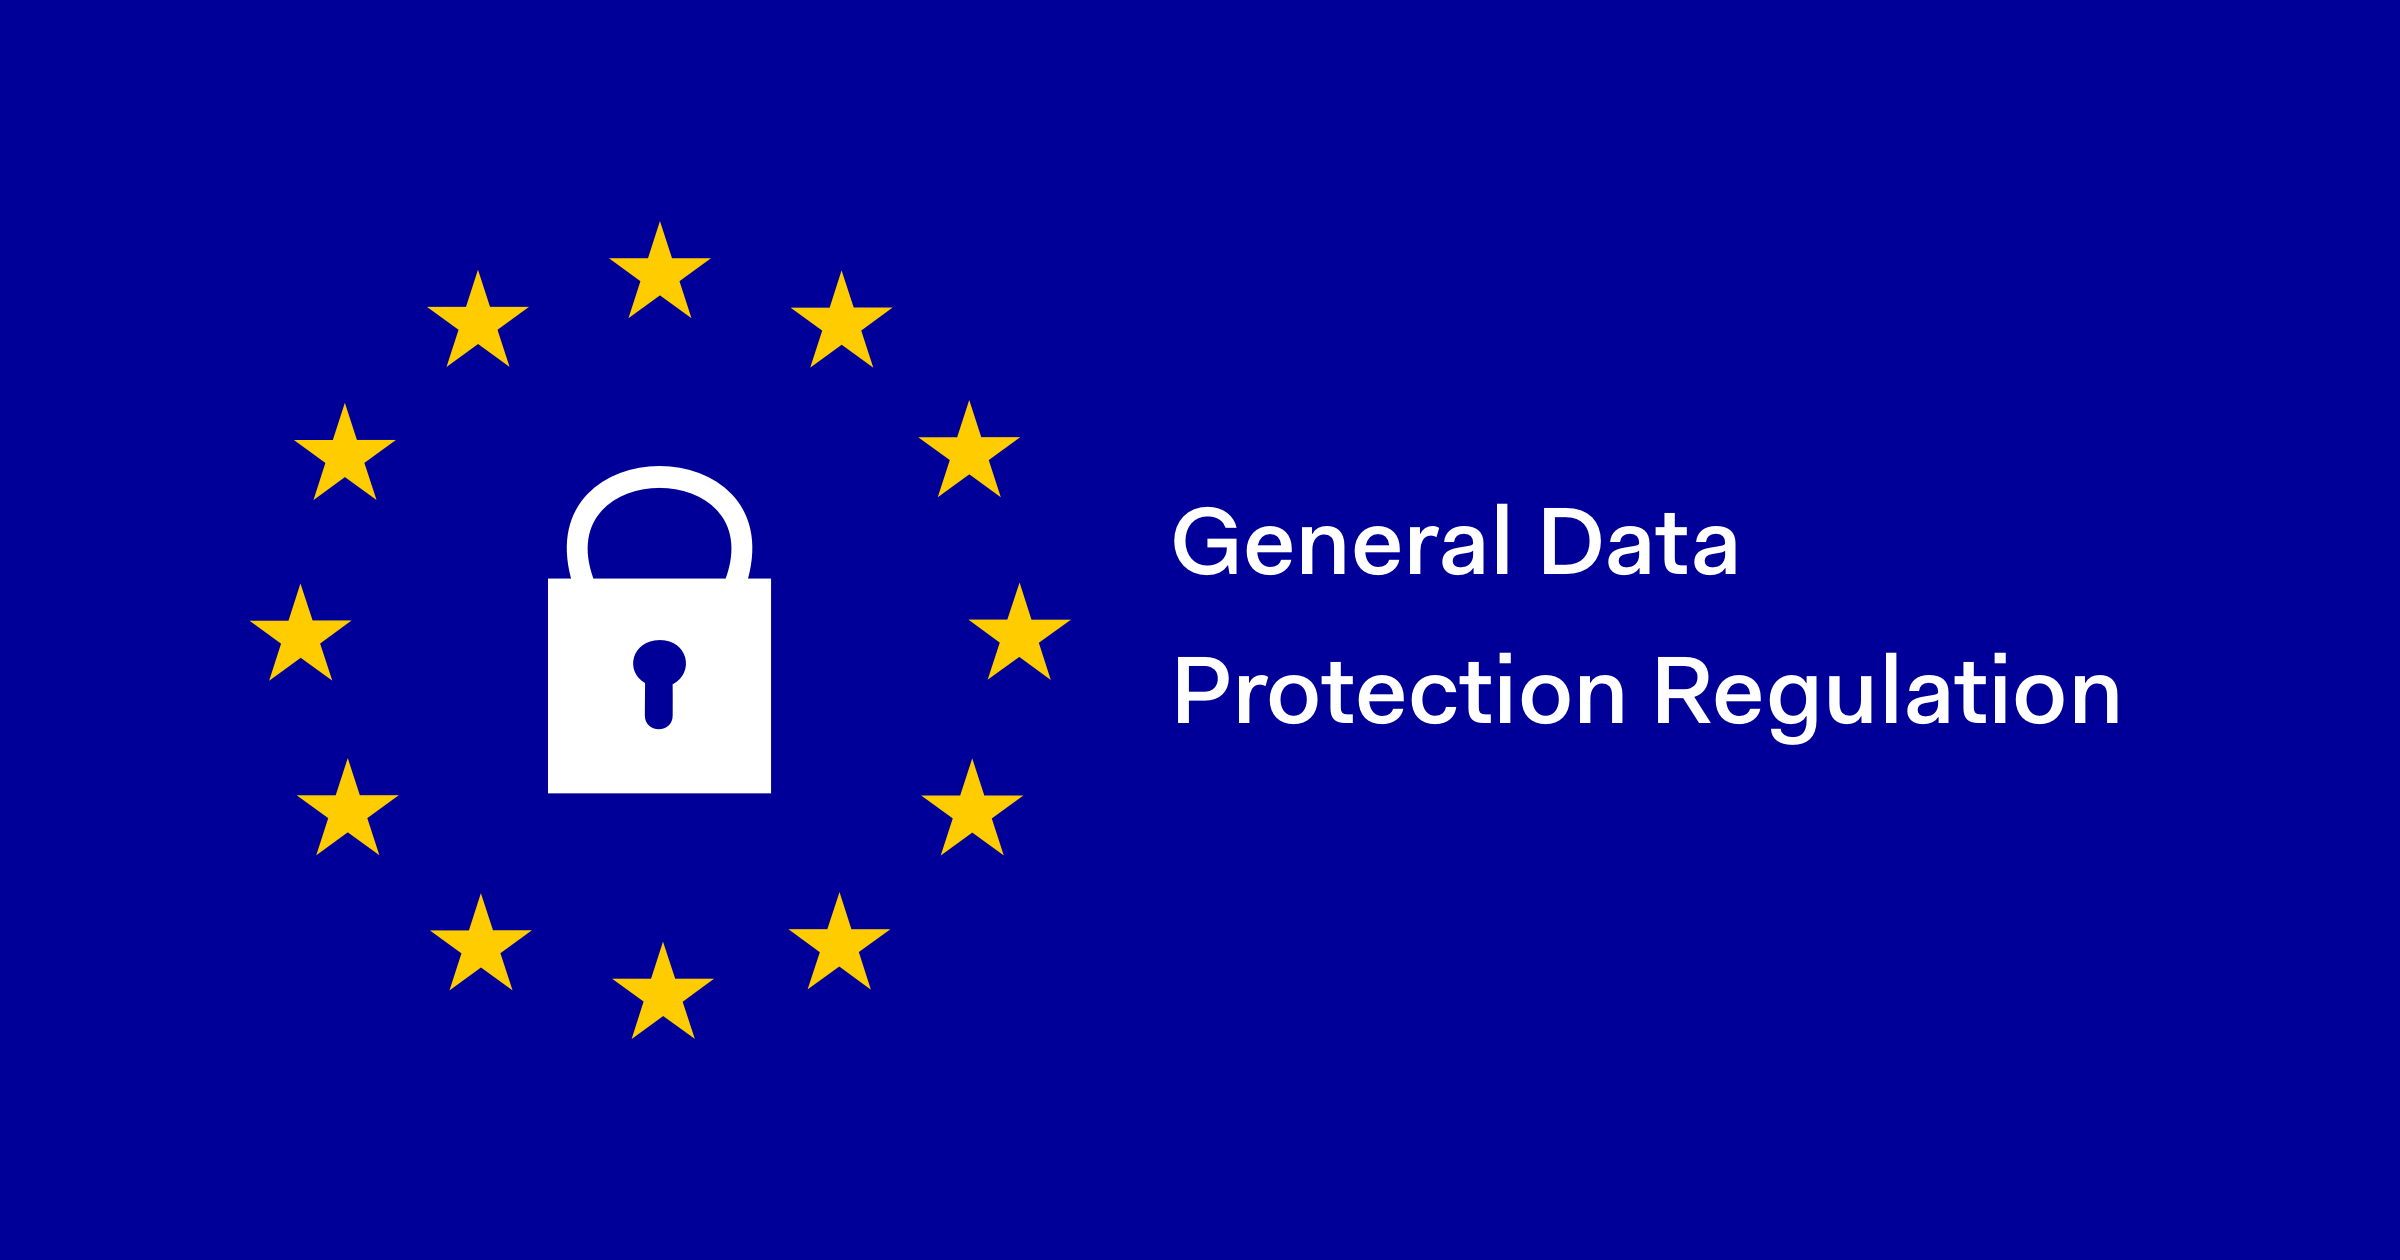 GDPR or EU Data Protection Act